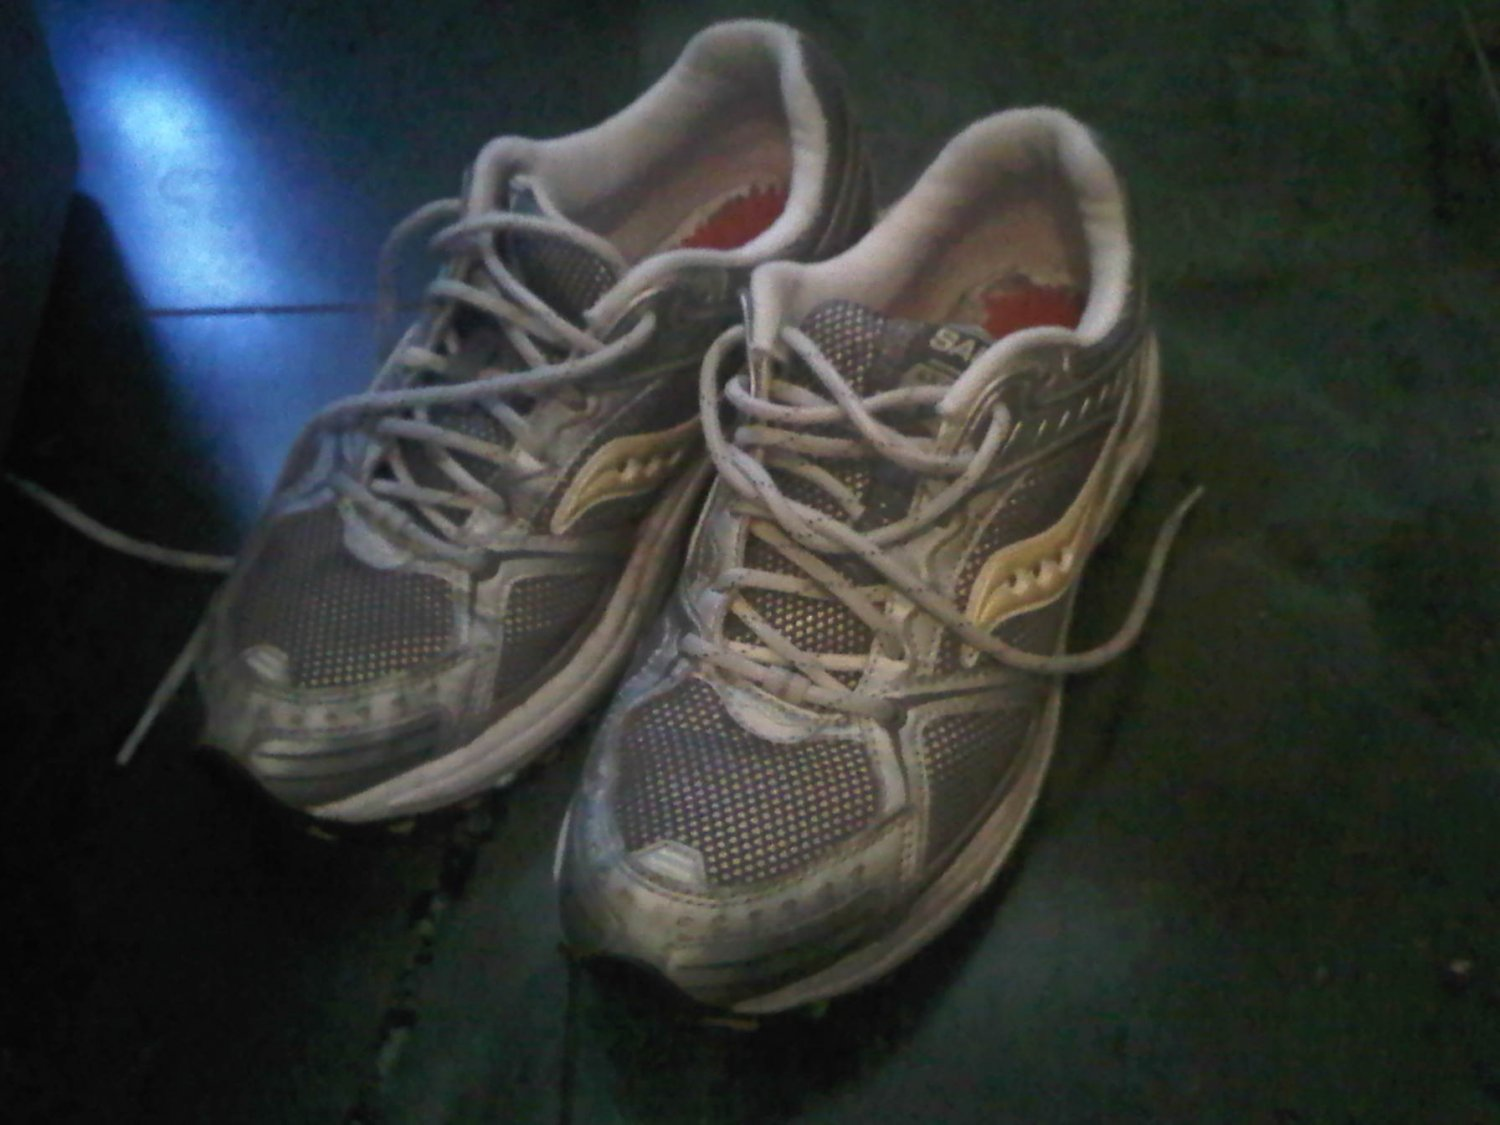 SAUCONY YELLOW WHITE TENNIS SHOES WOMEN'S 9 CLOTHES ACCESSORY